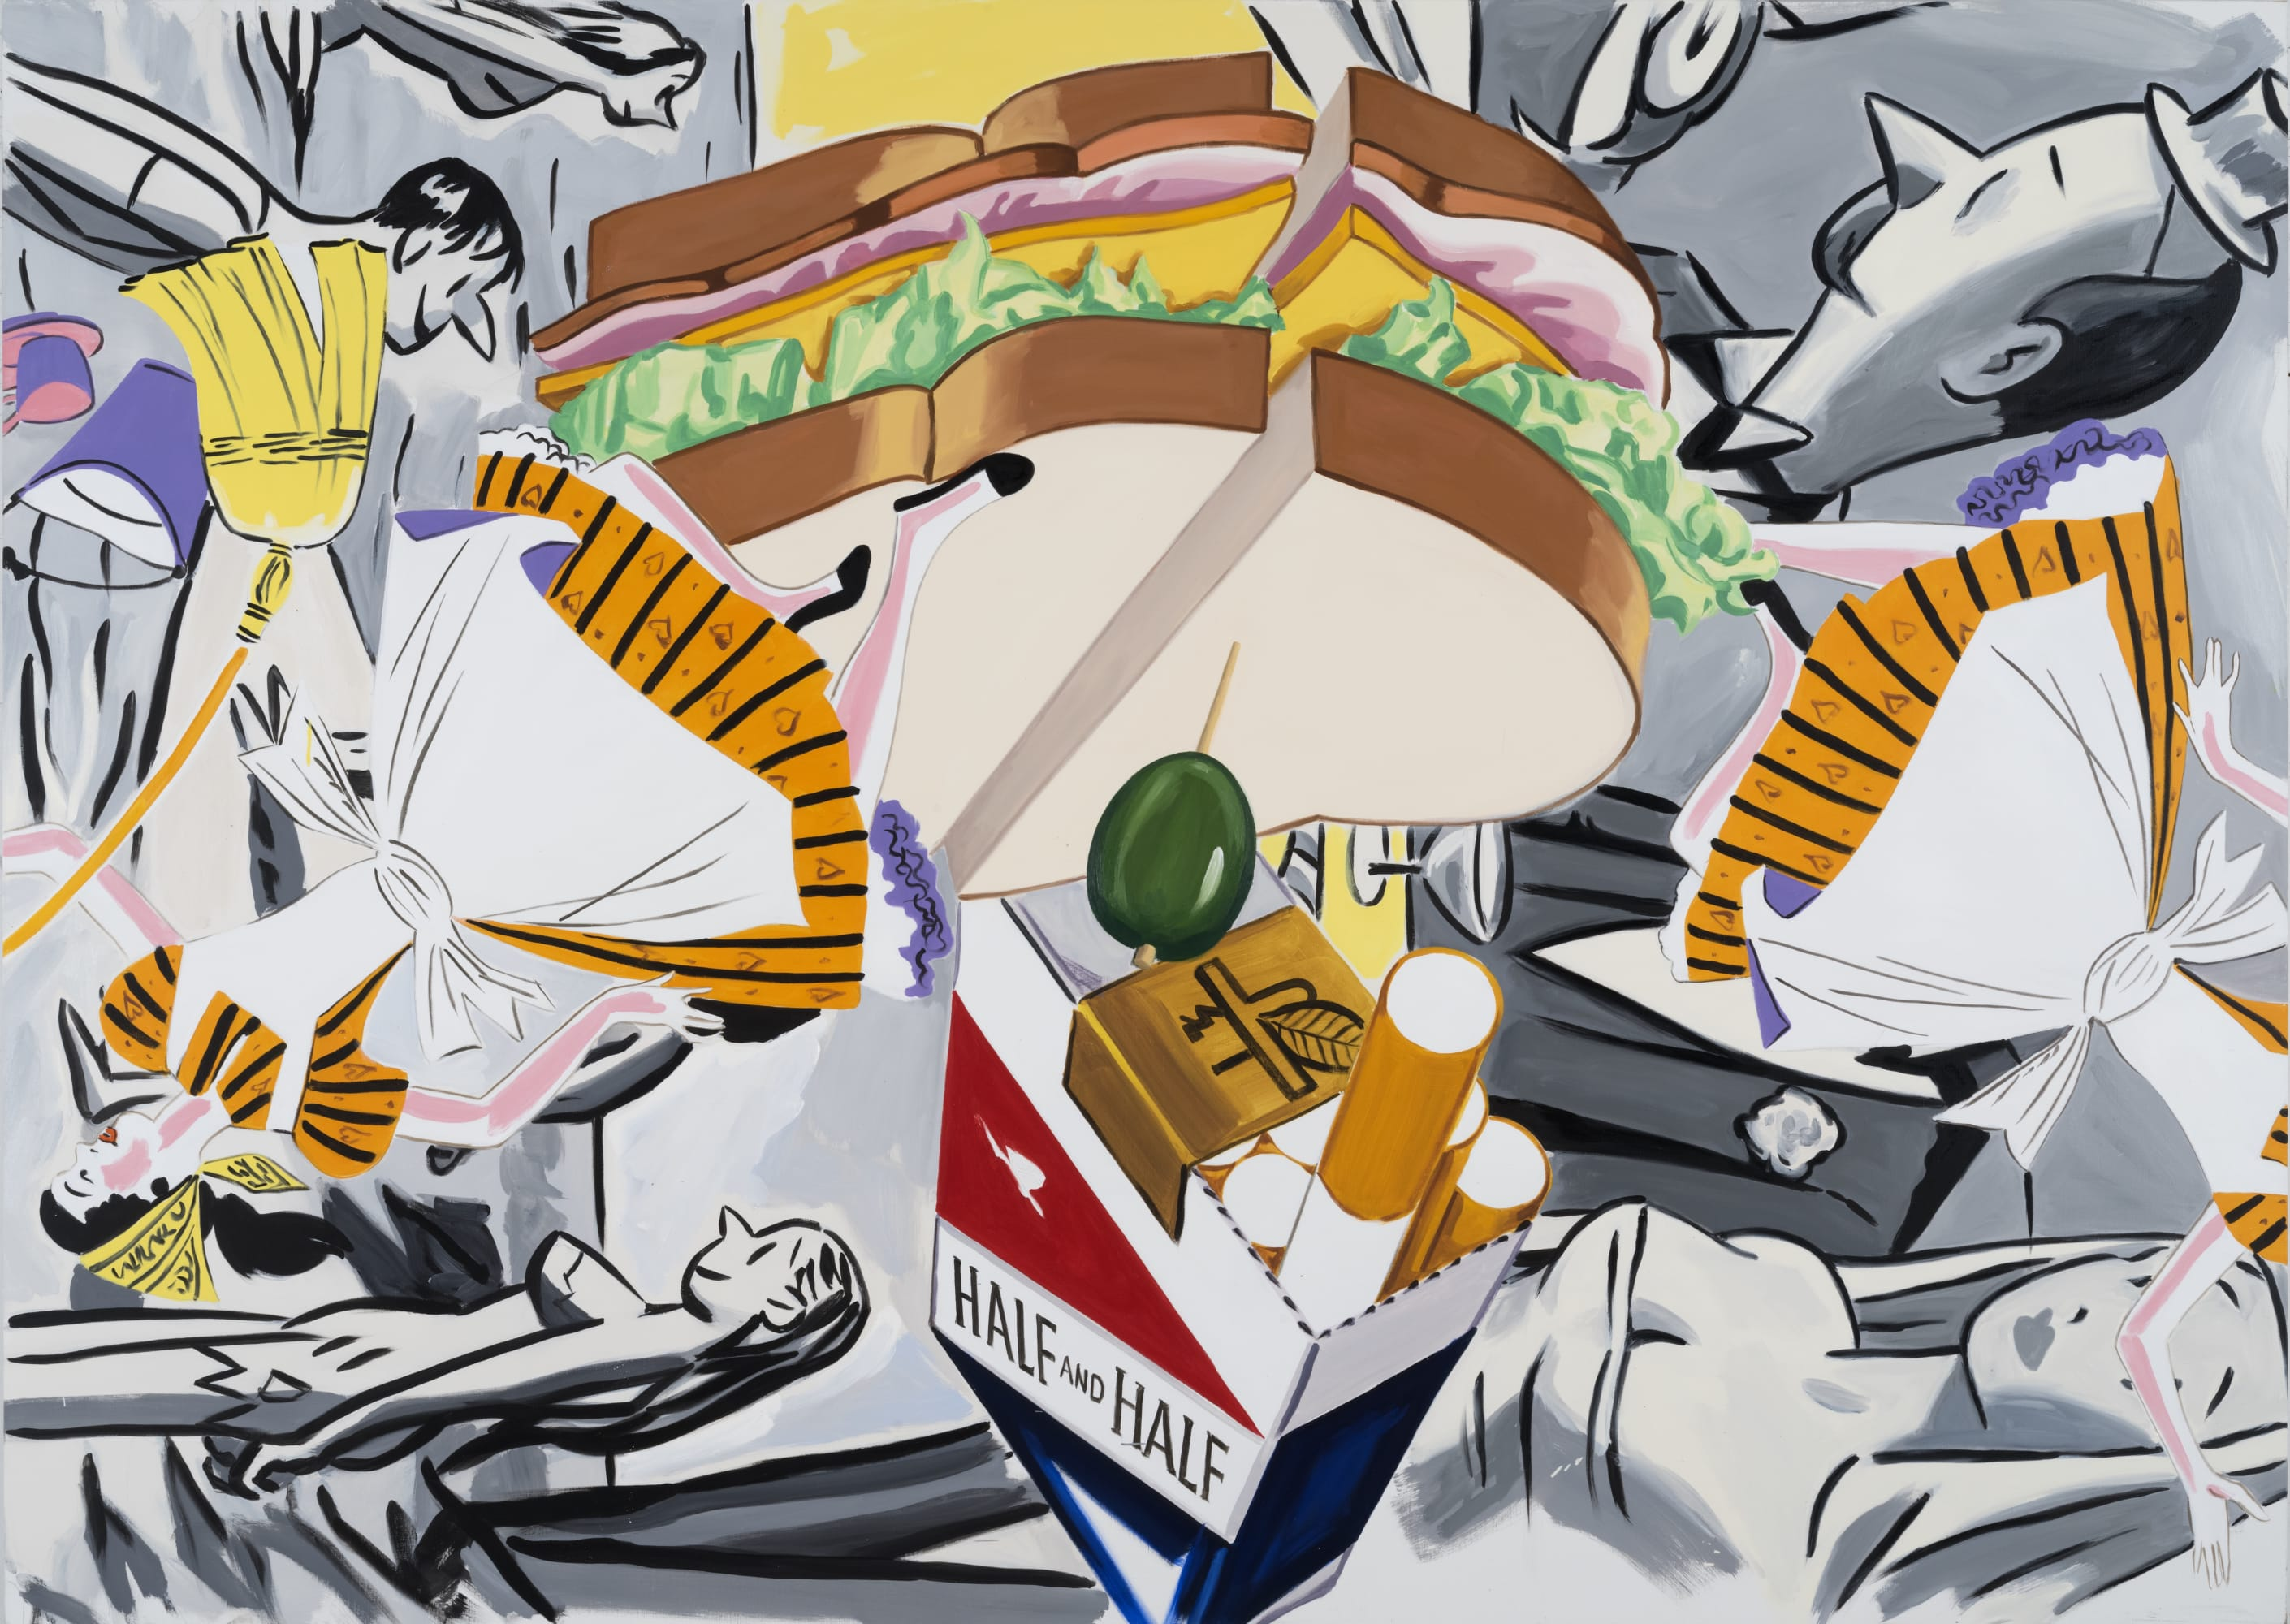 David Salle, A Night in the Sky with Friends (2019); Self-Ironing Pants & Other Paintings at Thaddaeus Ropac Paris Marais 2020